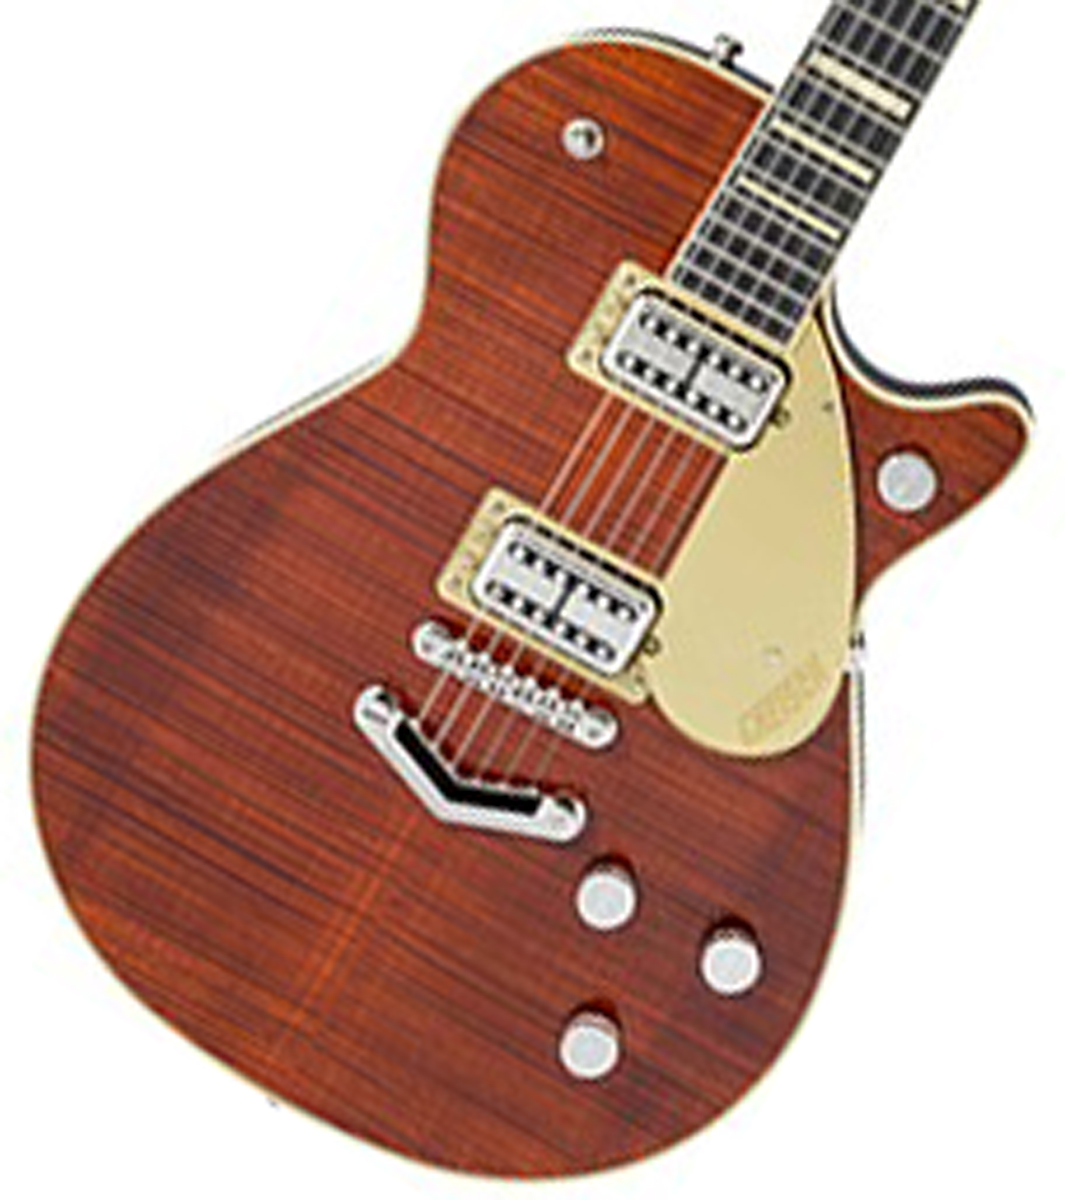 Gretsch / G6228FM Players Edition Jet BT with V-Stoptail Bourbon Stain グレッチ 【WEBSHOP】